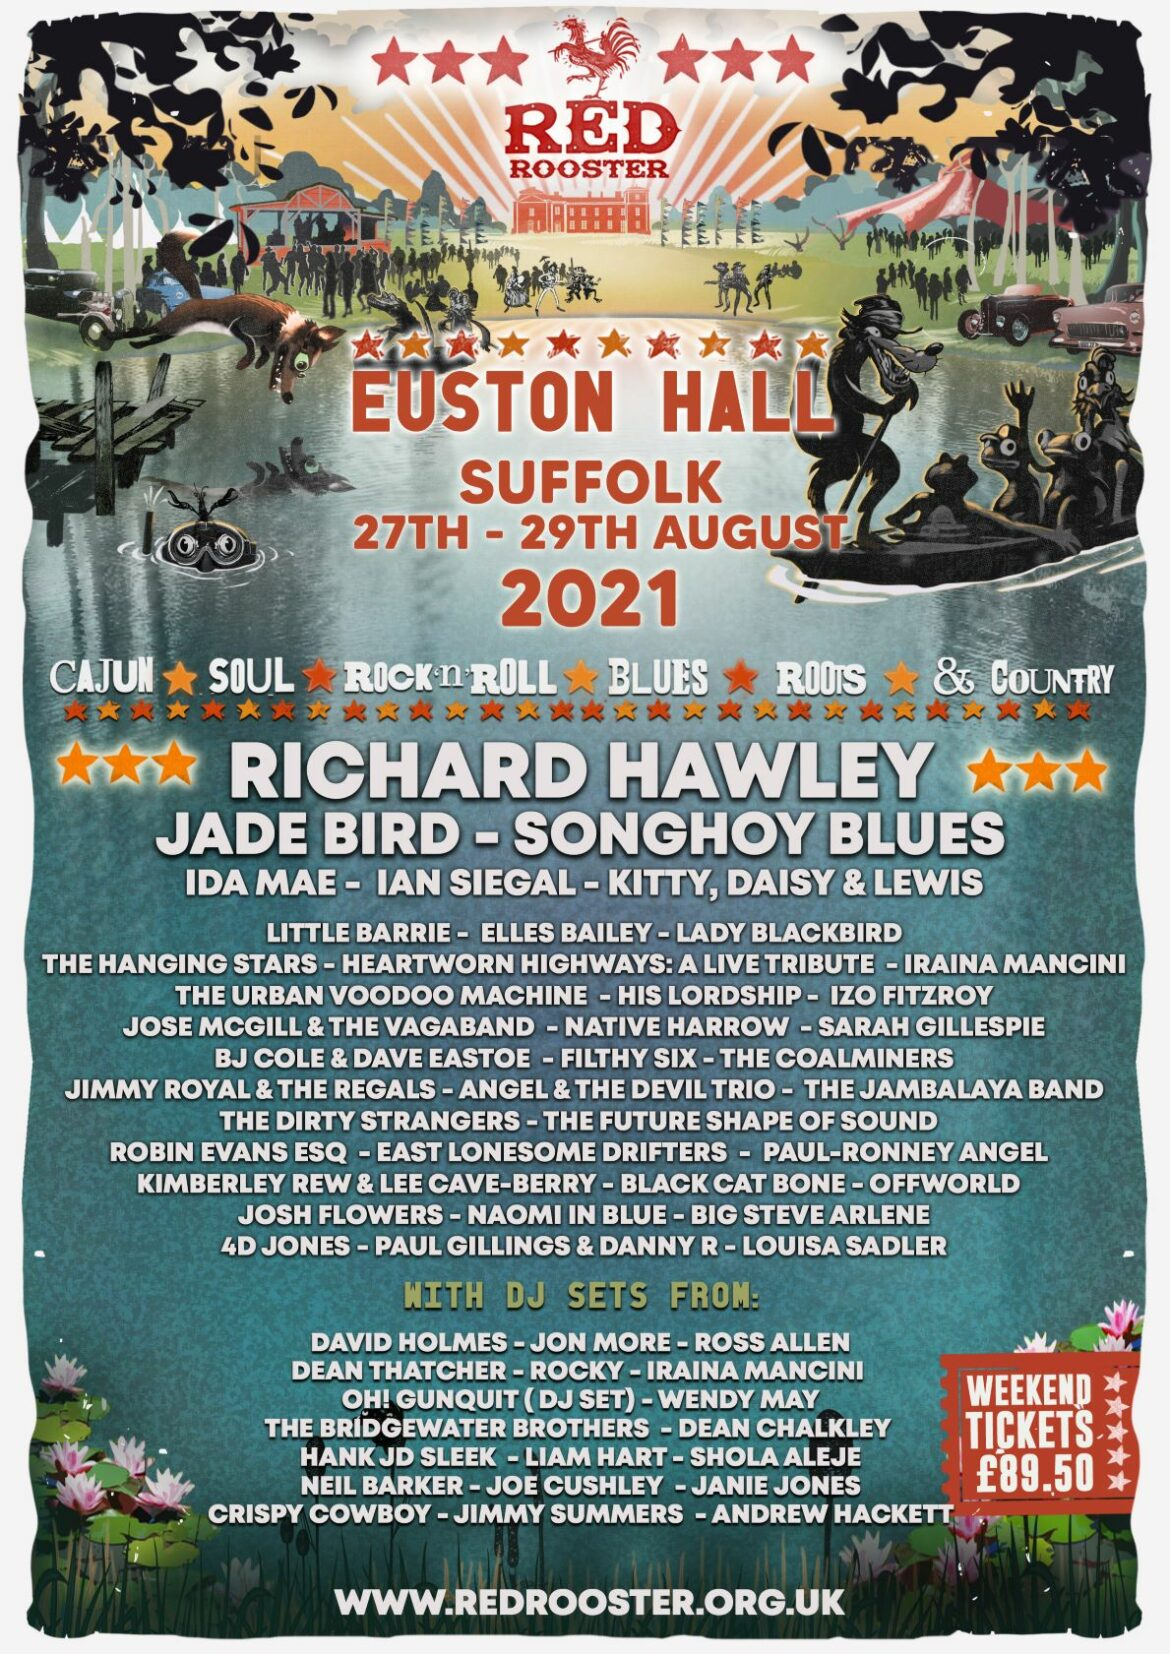 NEWS: Red Rooster Festival announces its full line-up for 2021